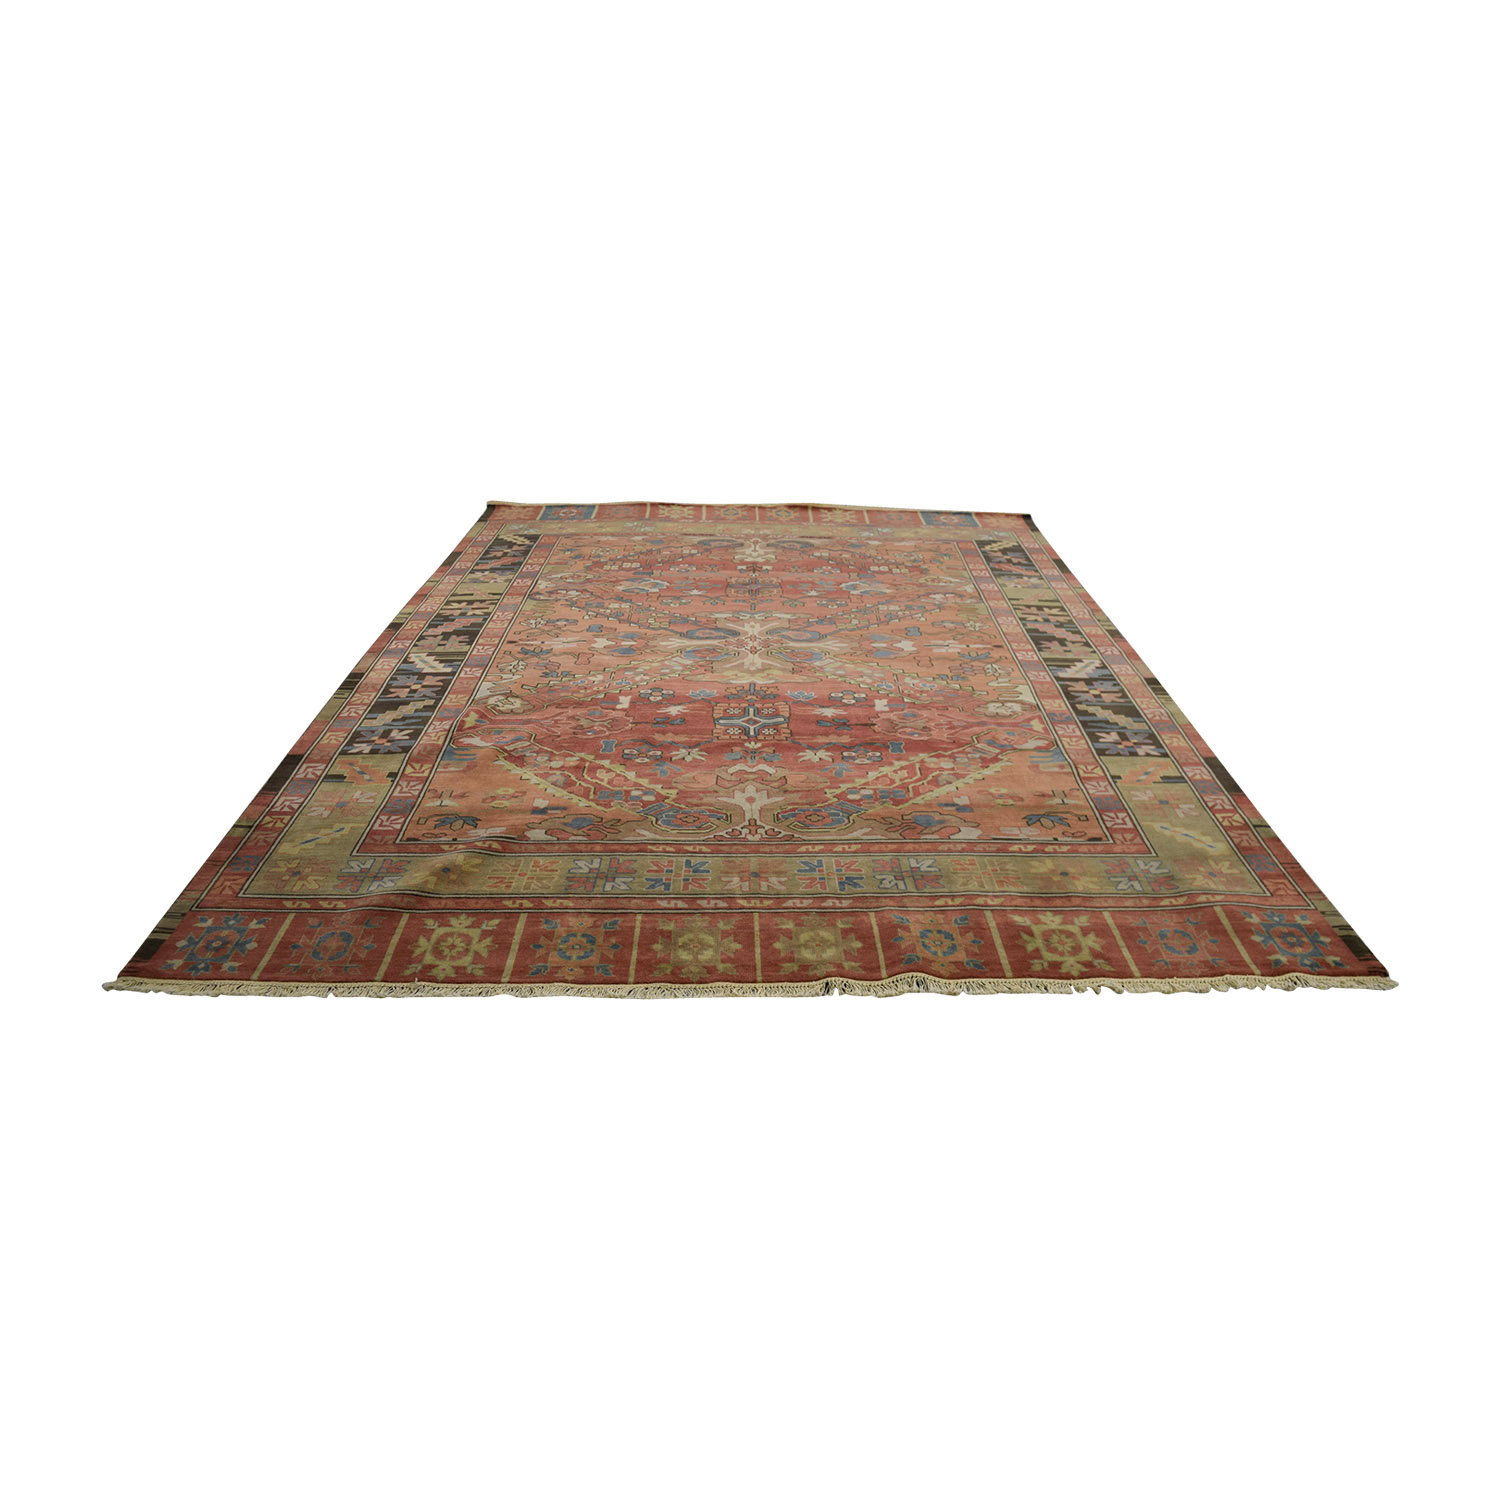 Obeetee Kayseri Red Blue And Yellow Wool Rug Dimensions